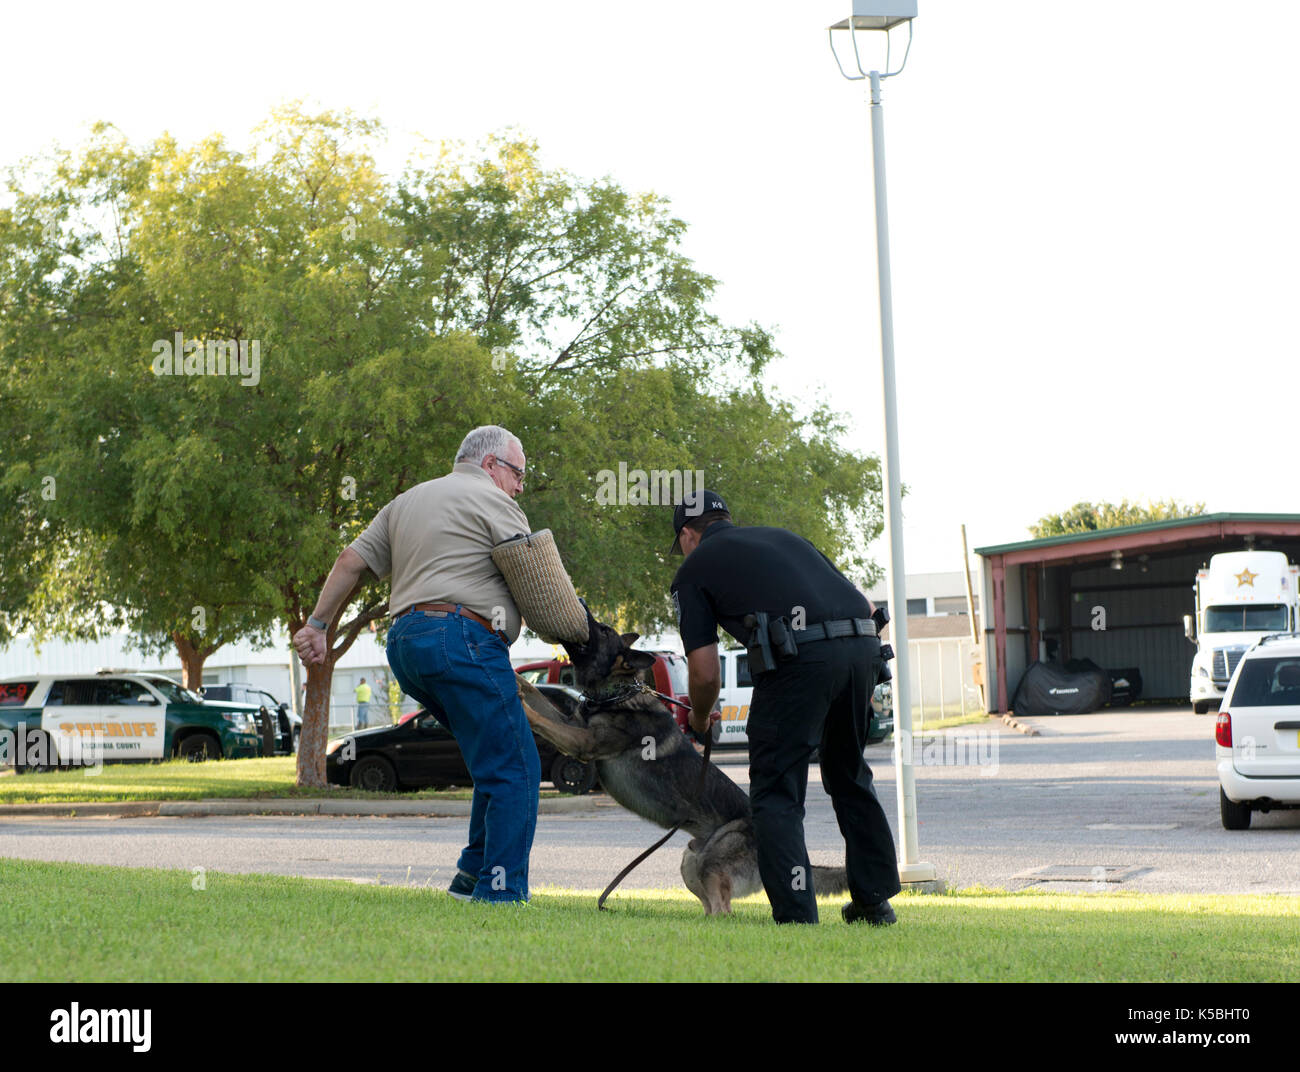 Police K-9 Demonstration at Escambia County Sheriff in Pensacola, Florida - Stock Image